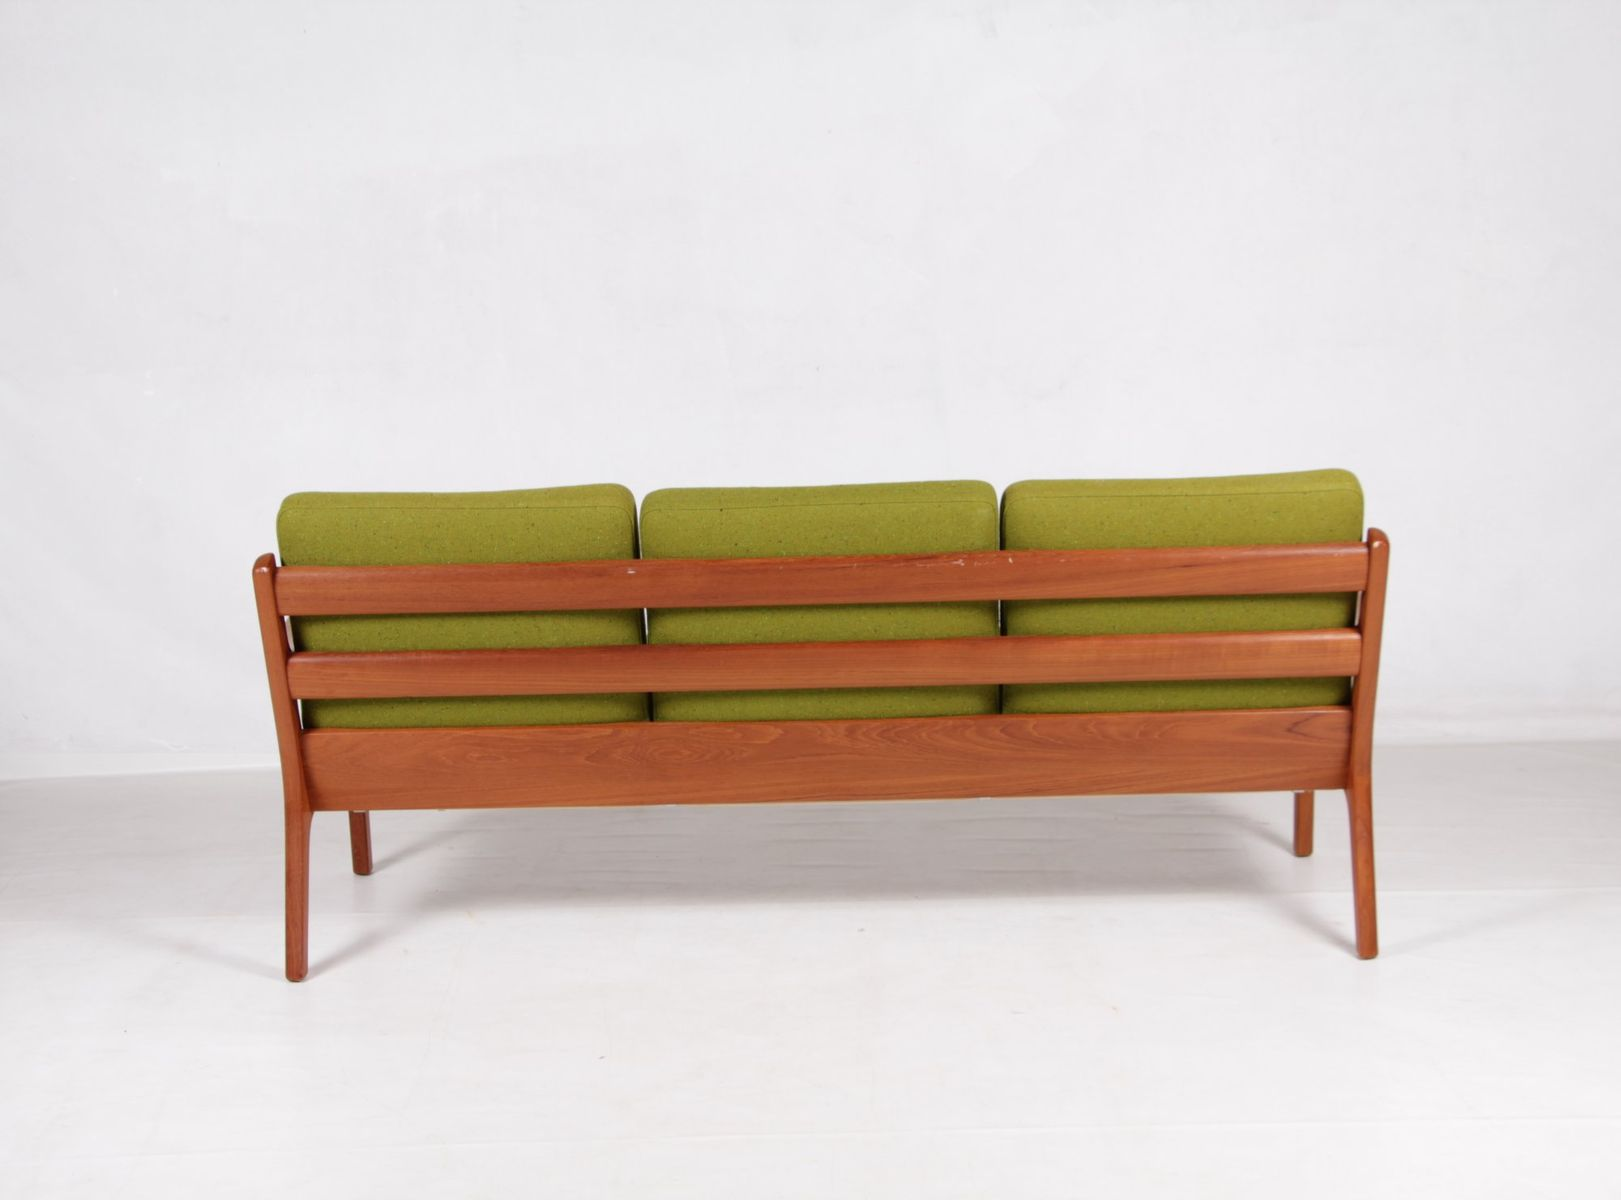 Teak Sofa By Ole Wanscher For France S N 1960s For Sale At Pamono